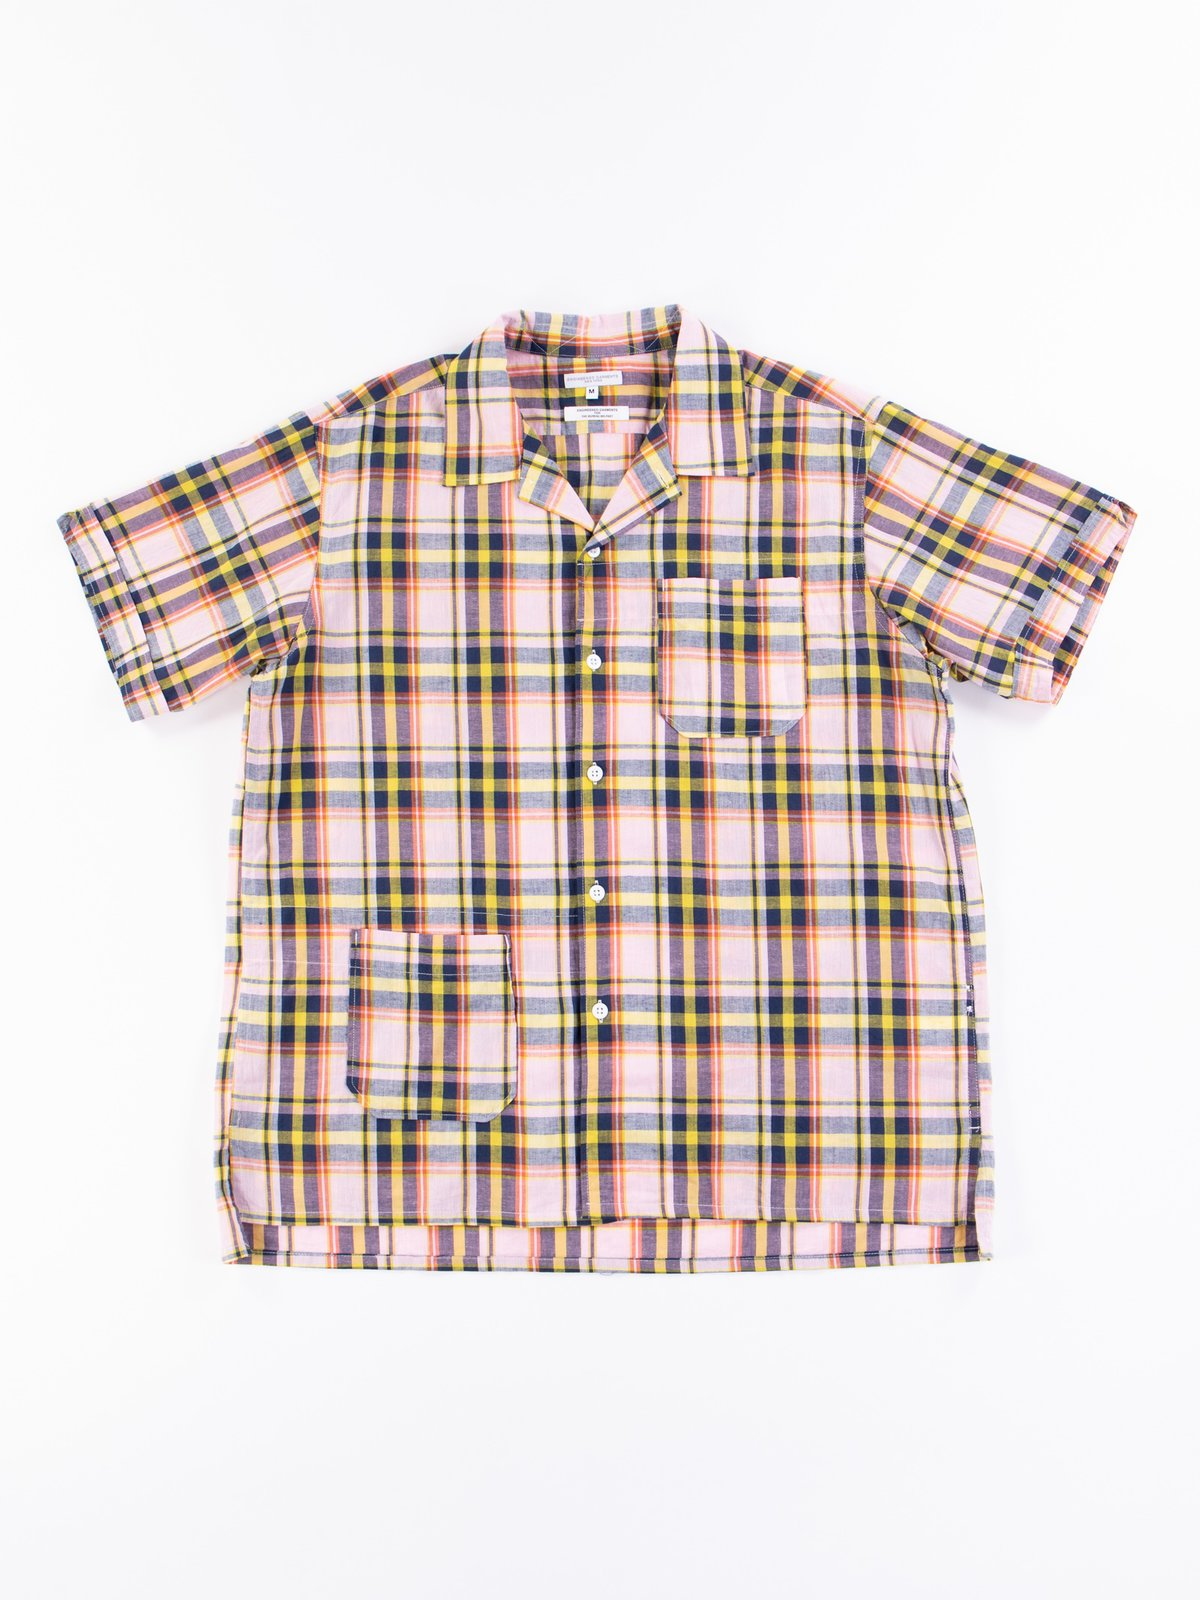 Pink/Yellow CL Madras Plaid Camp Shirt - Image 1